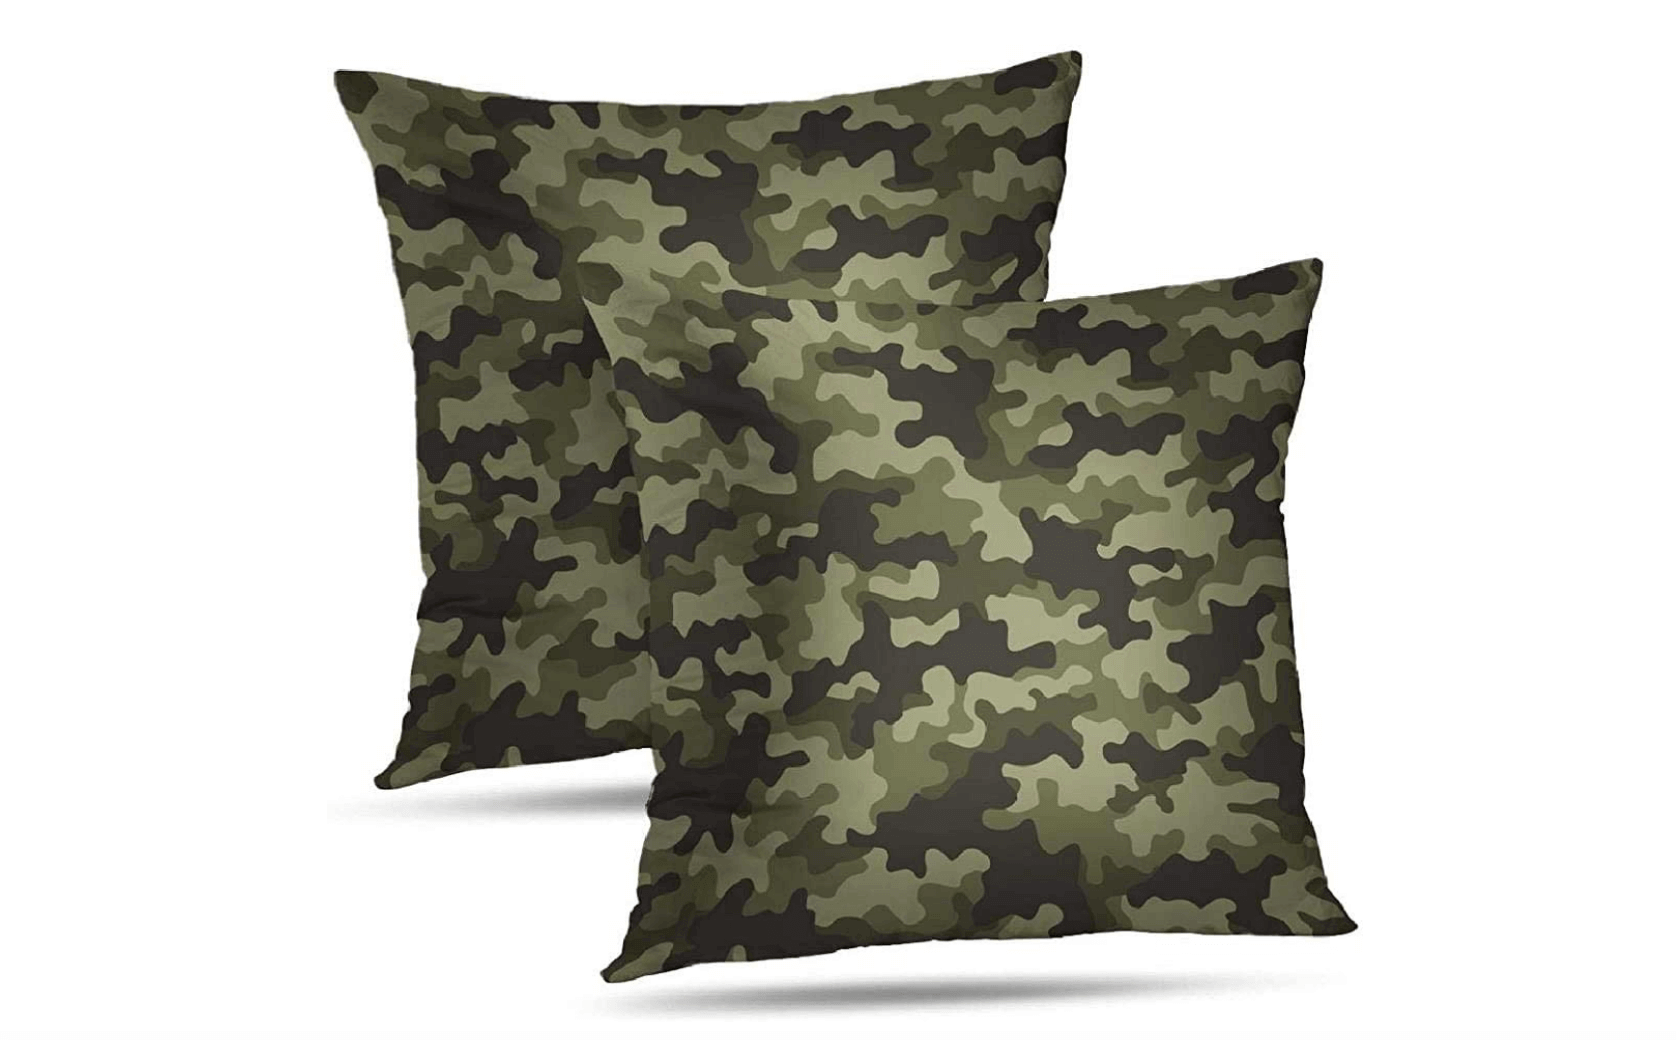 Two pillows with camouflage print